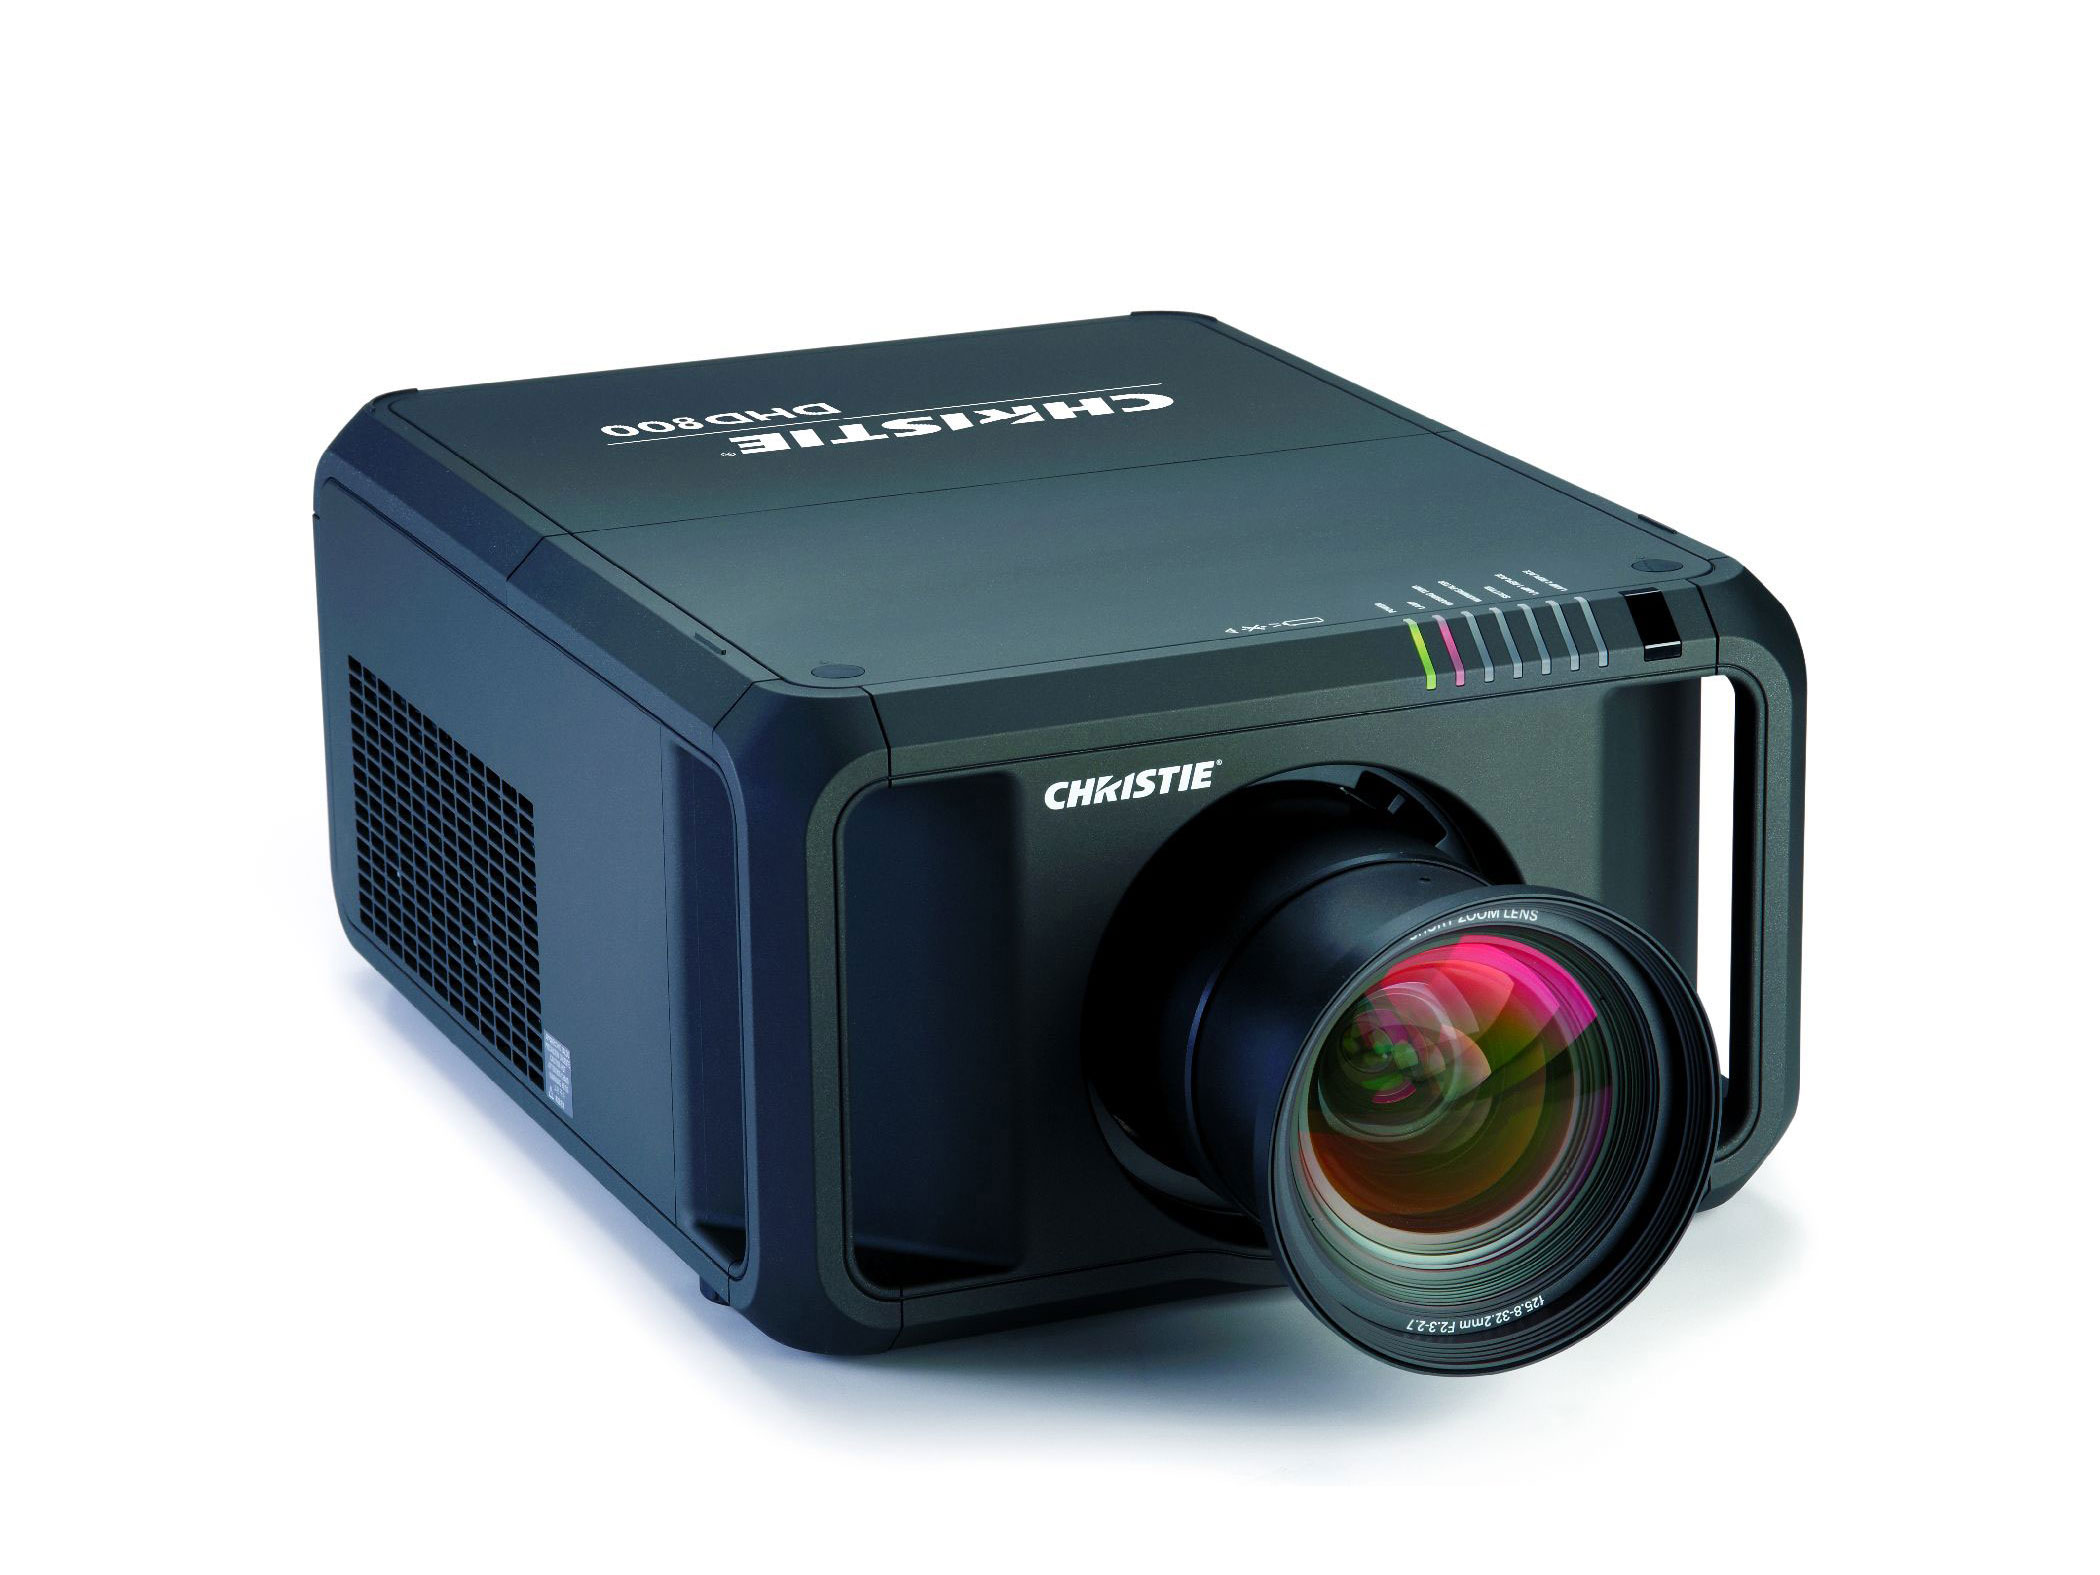 /globalassets/.catalog/products/images/christie-dhd800/gallery/christie-dhd800-digital-projector-image4.jpg